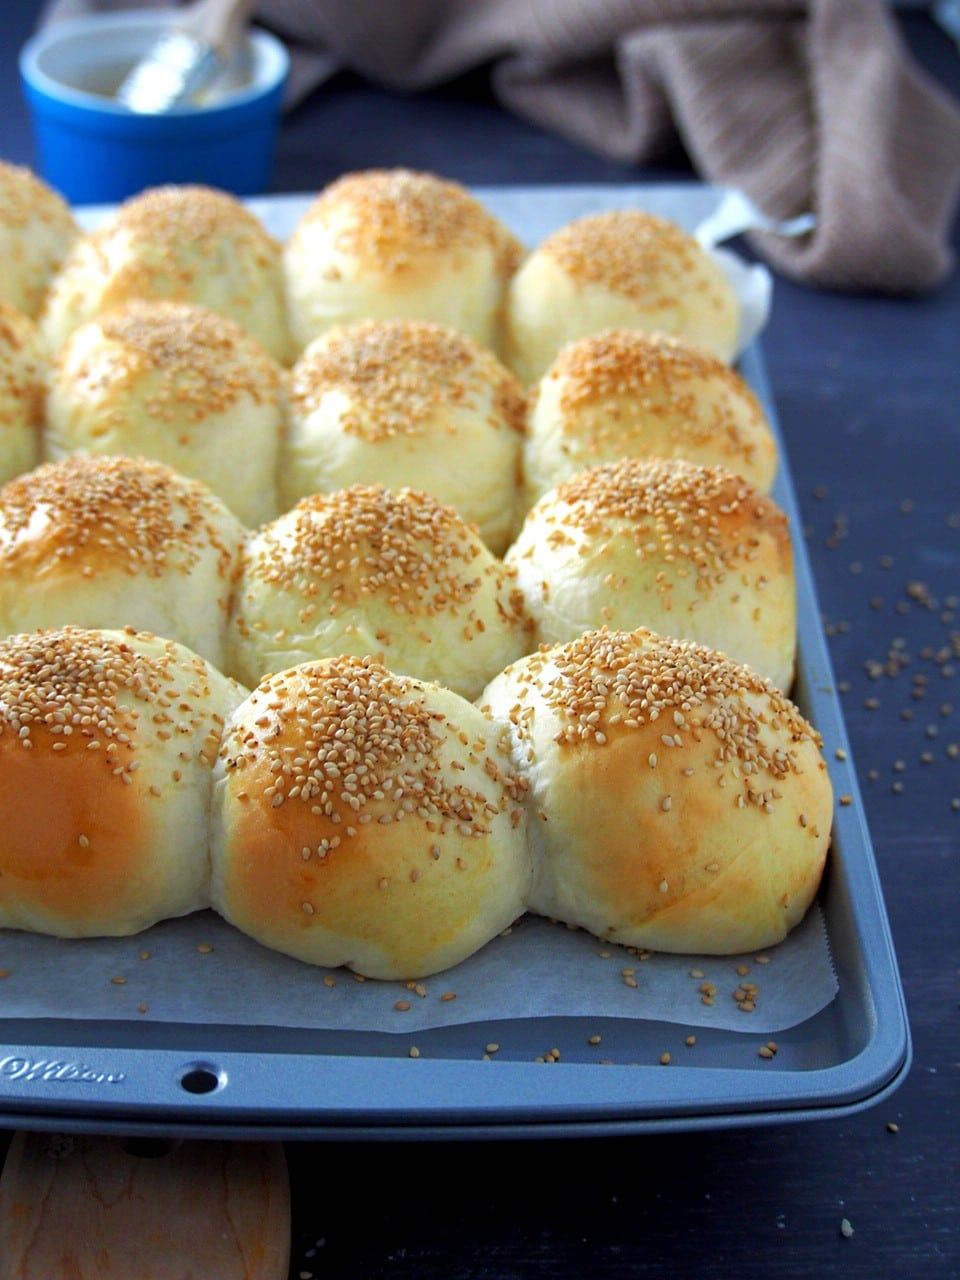 A tray of mongo buns just pulled out from the oven.